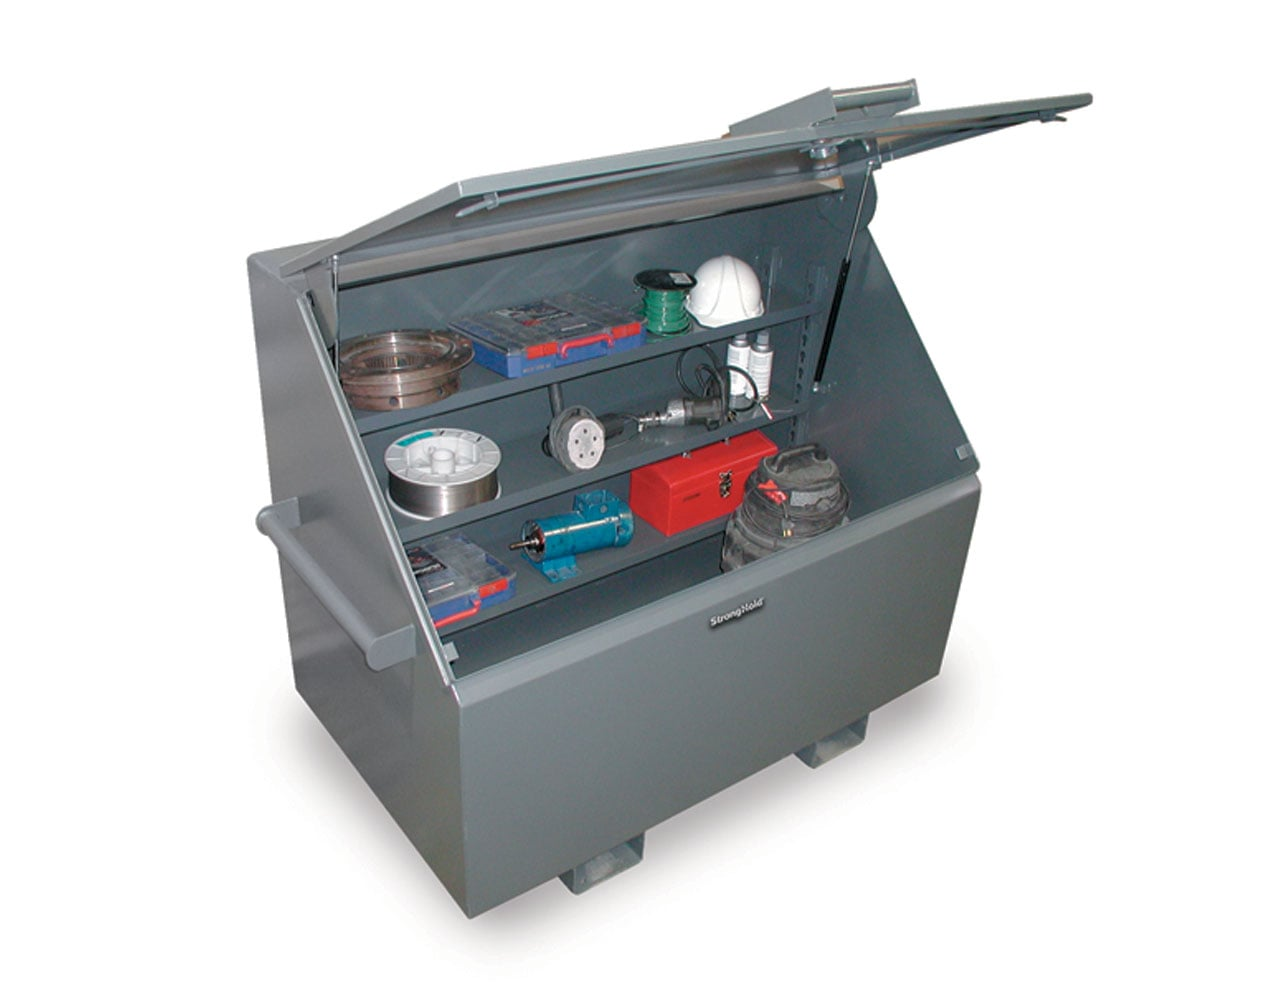 Extra Heavy Duty 12 GA Job Site Box with Lift-Up Lid, 3 Shelves – 48 In. W x 36 In. D x 48 In. H